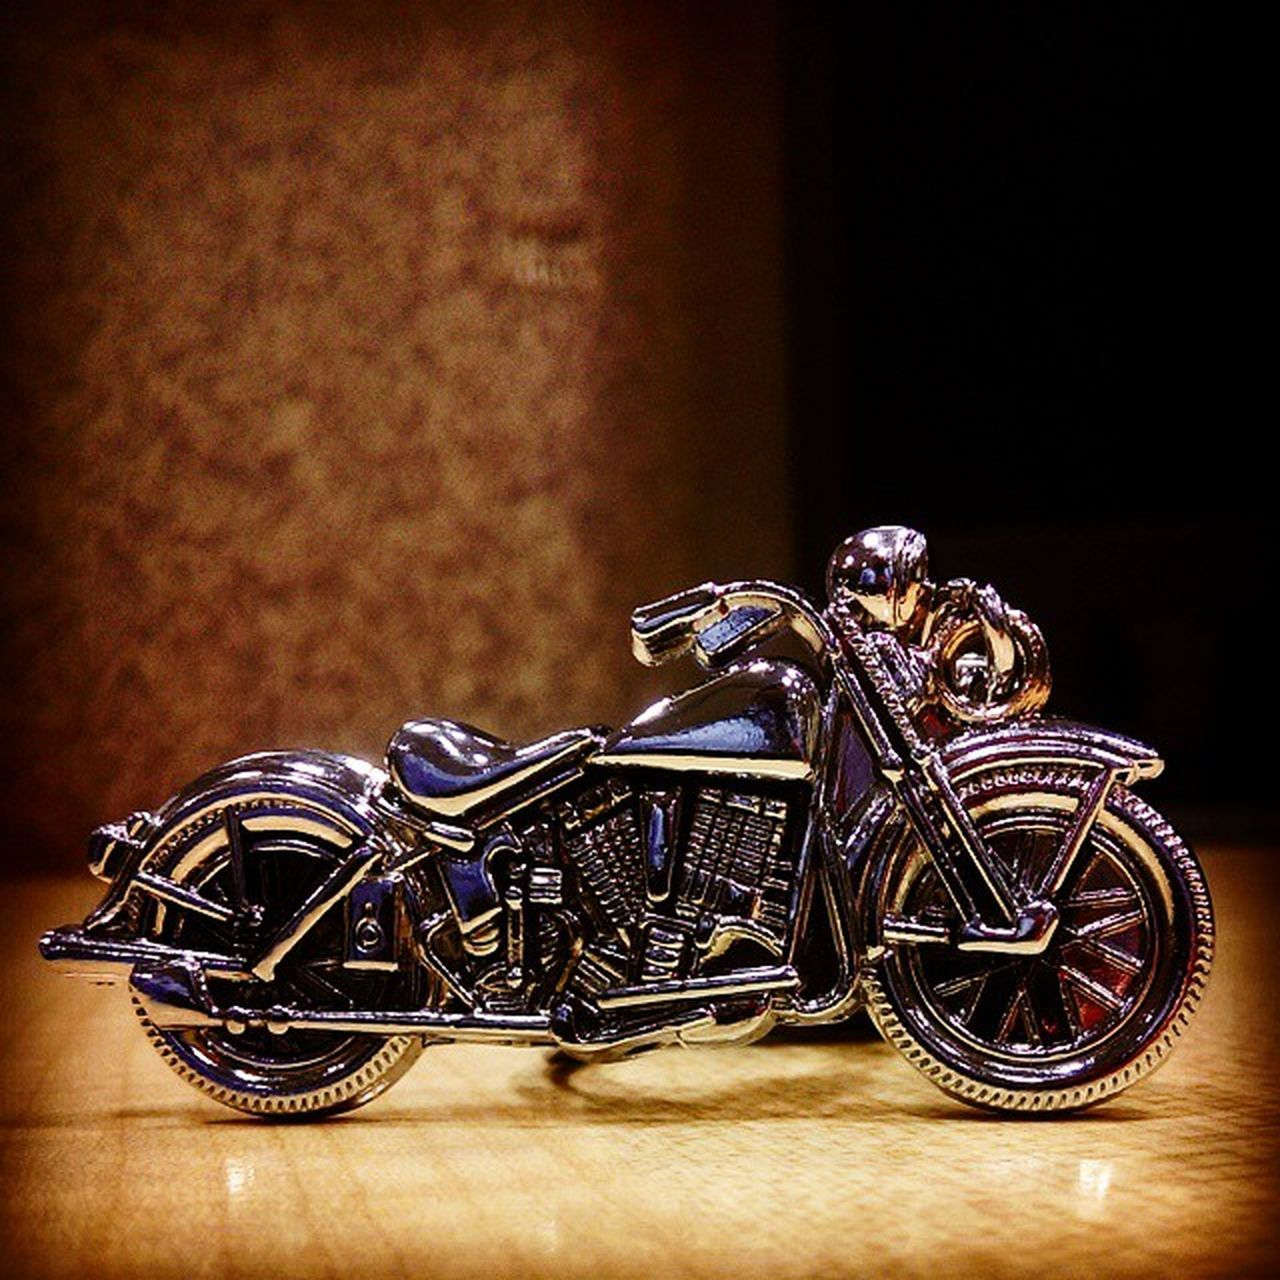 Rodeo OfcRndmz PocketHarley Compact Bike Royalenfield Keyring